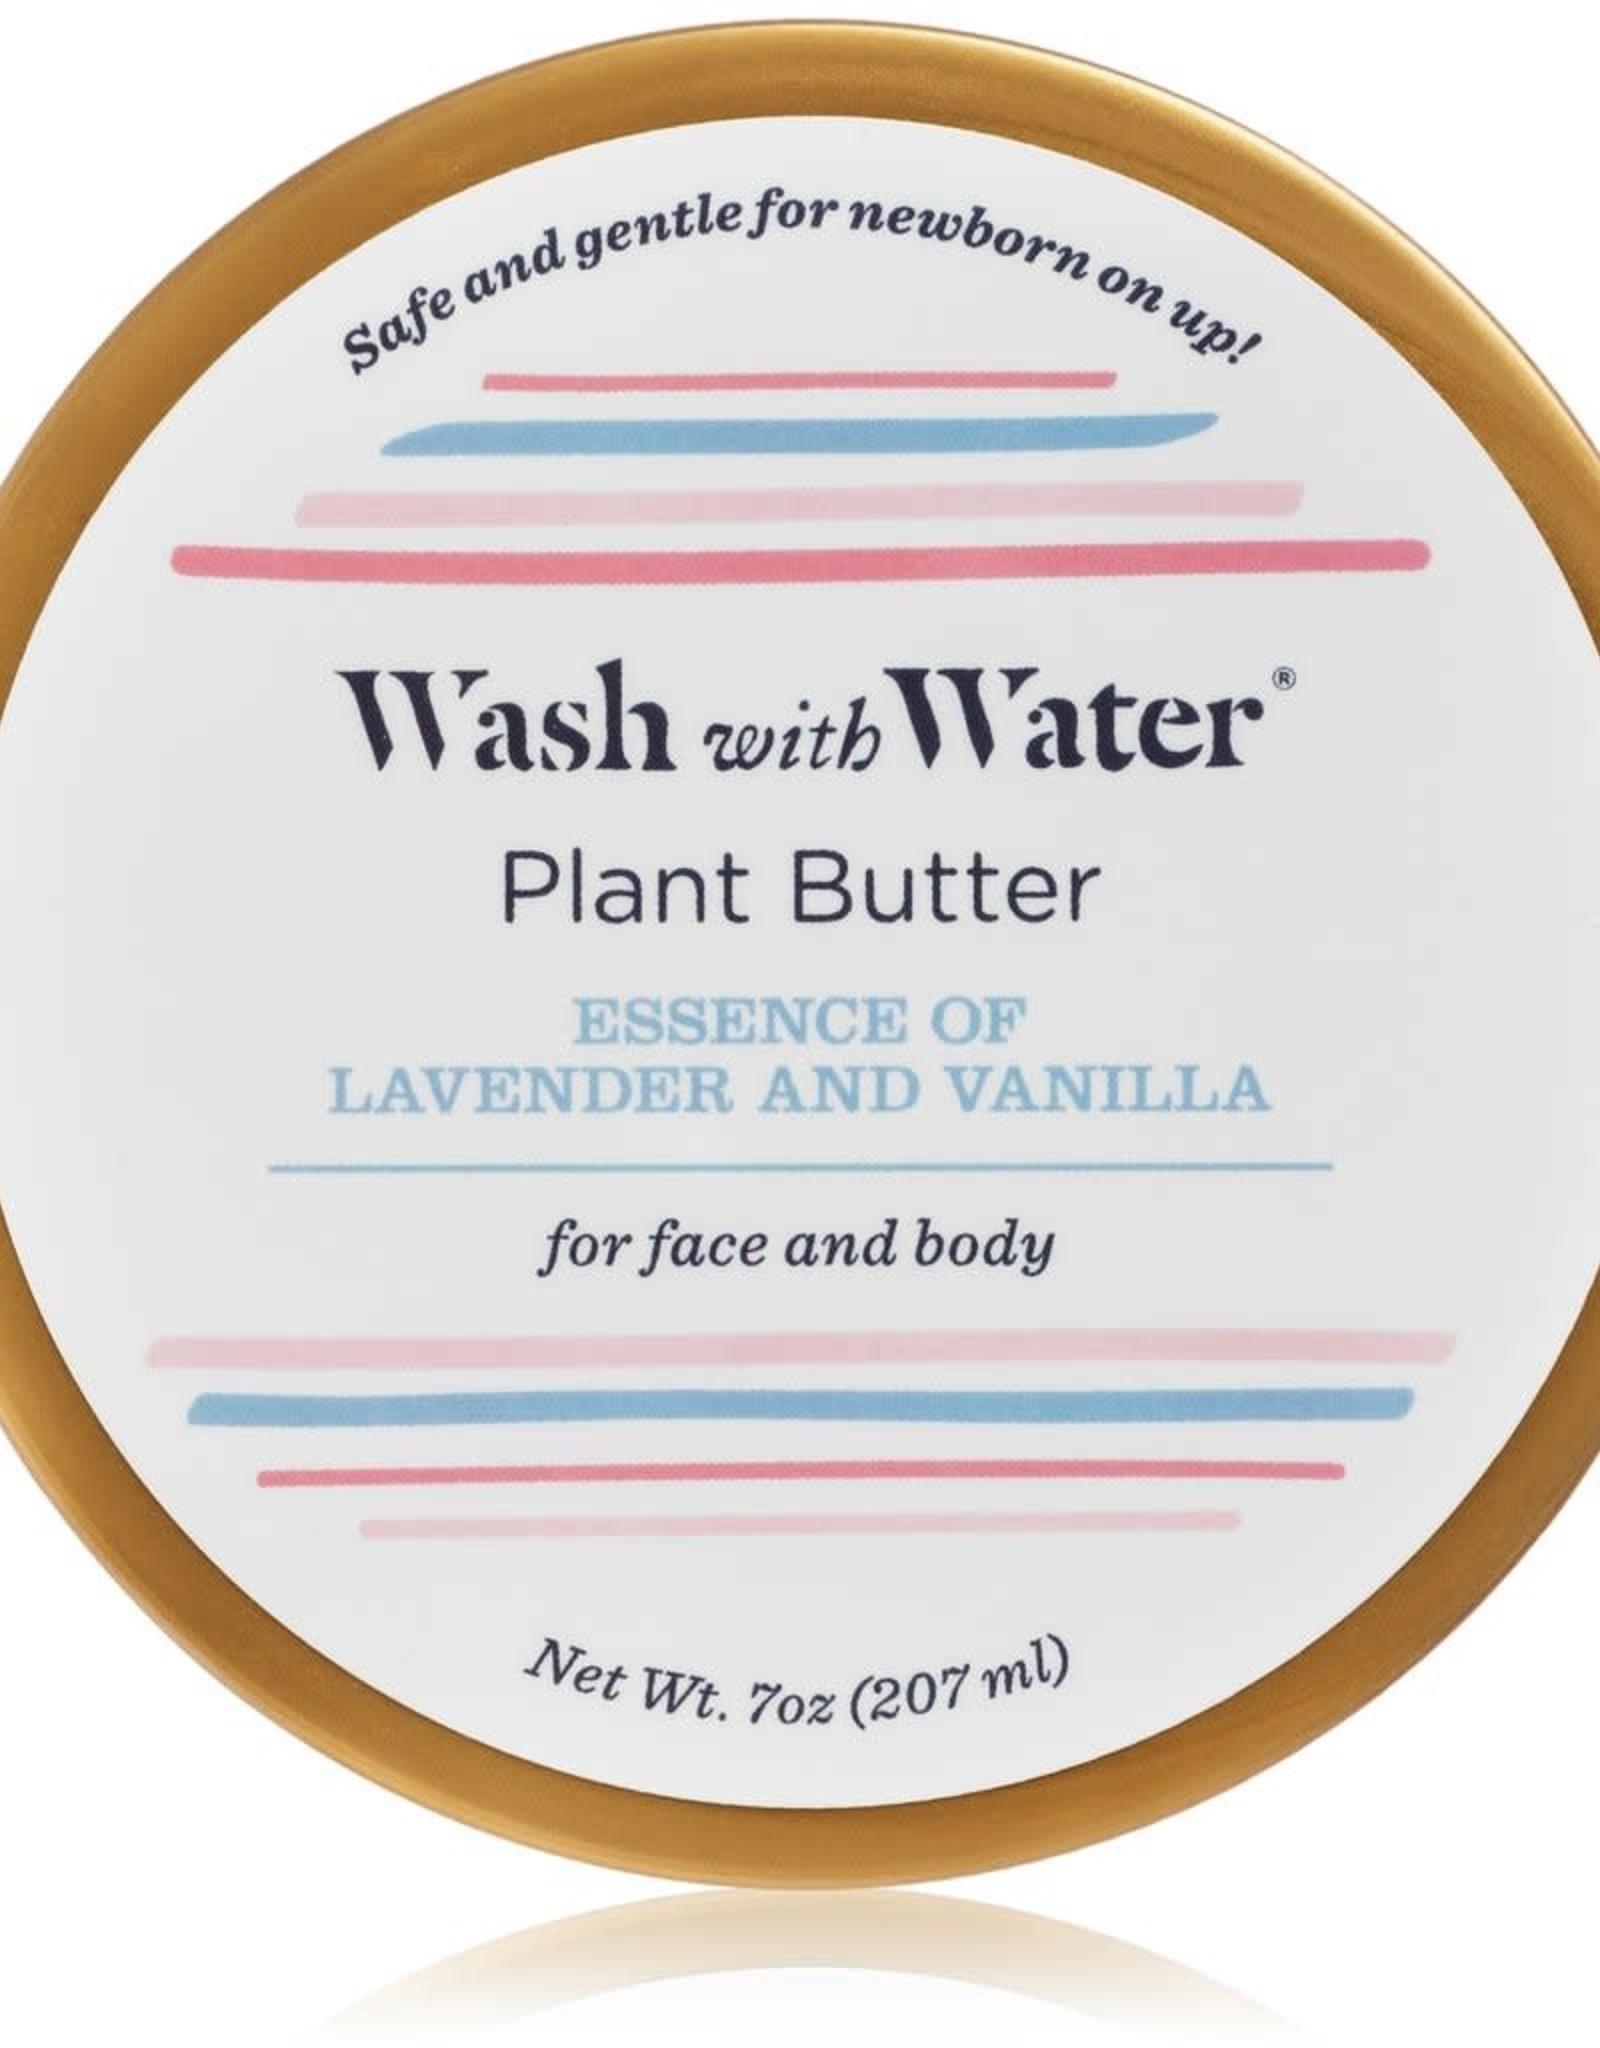 Wash with Water Baby & Mama Plant Butter Moisturizer Lavender Vanilla